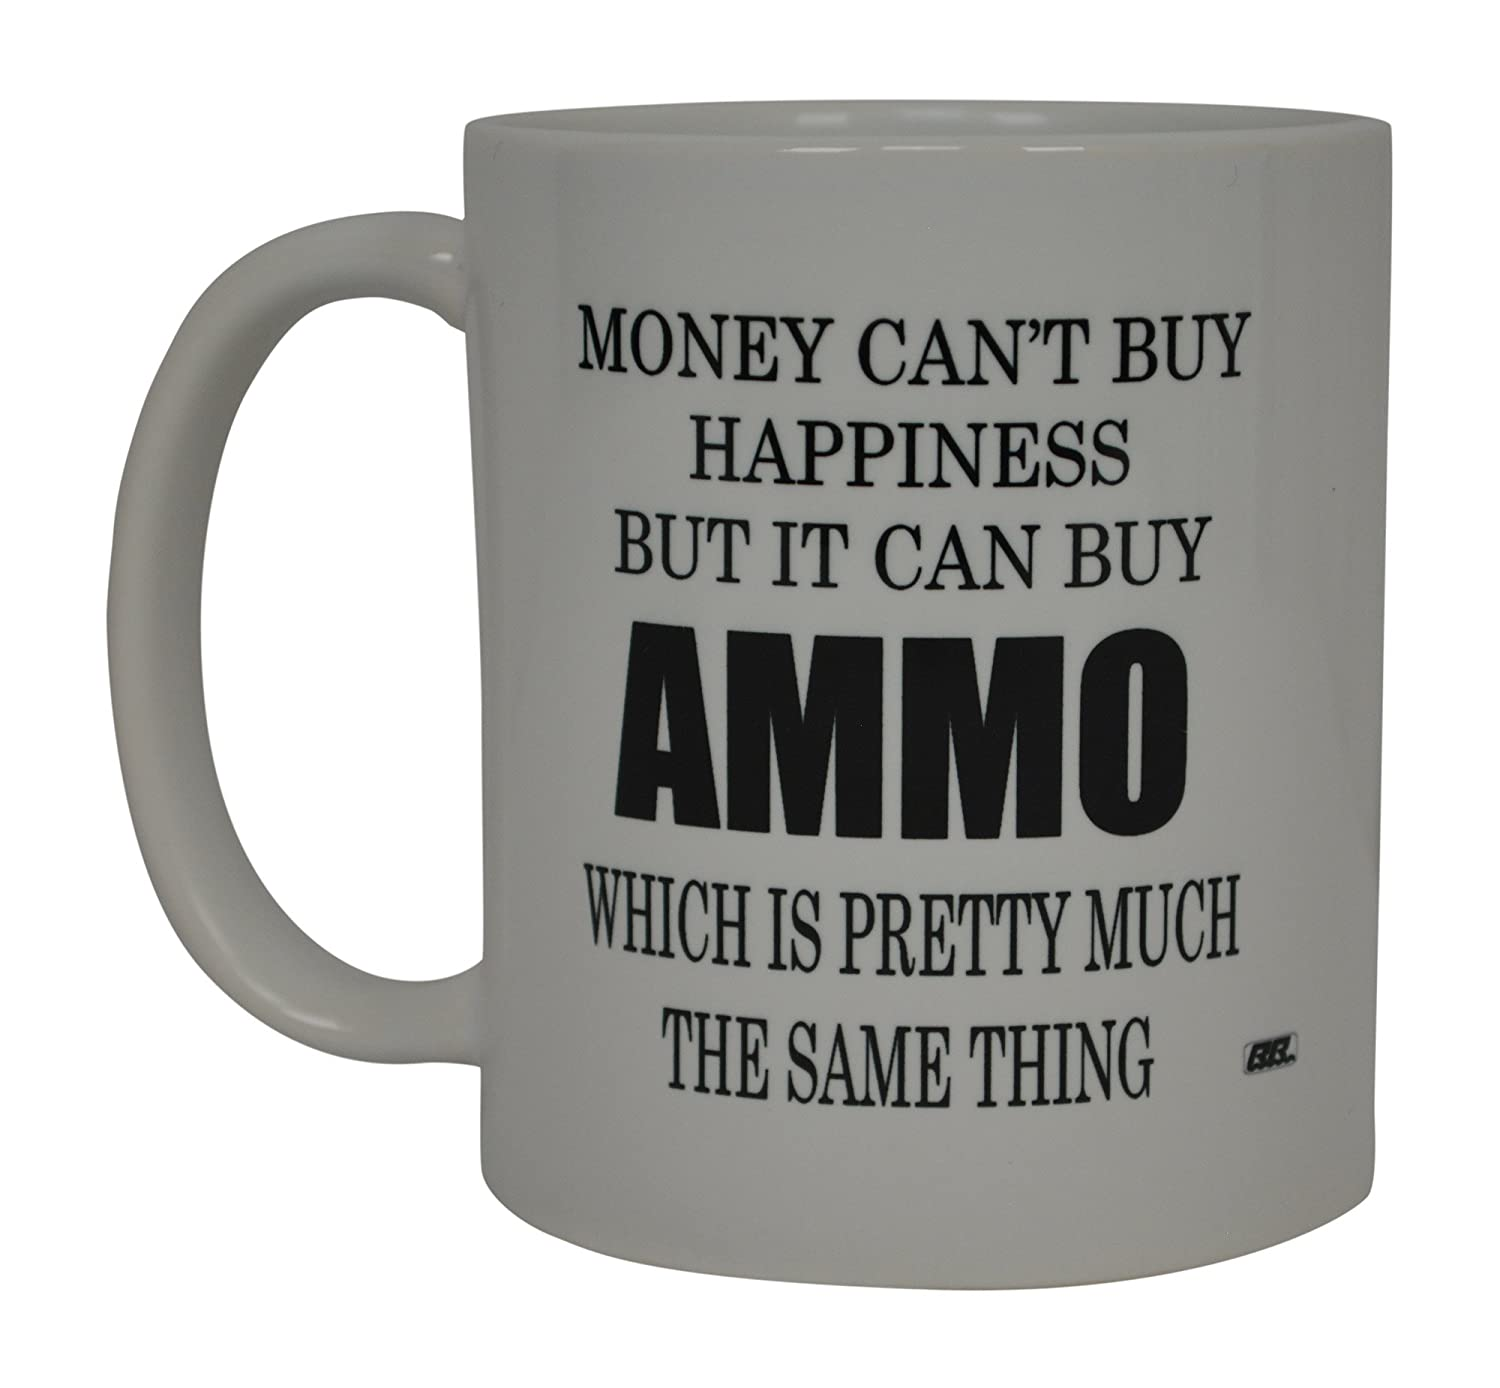 Best面白いコーヒーマグMoney Can Buy HappinessませんがIt Can Buy弾薬ノベルティCup Great Gift forメンズHunter Hunting Guns B078TS9J43